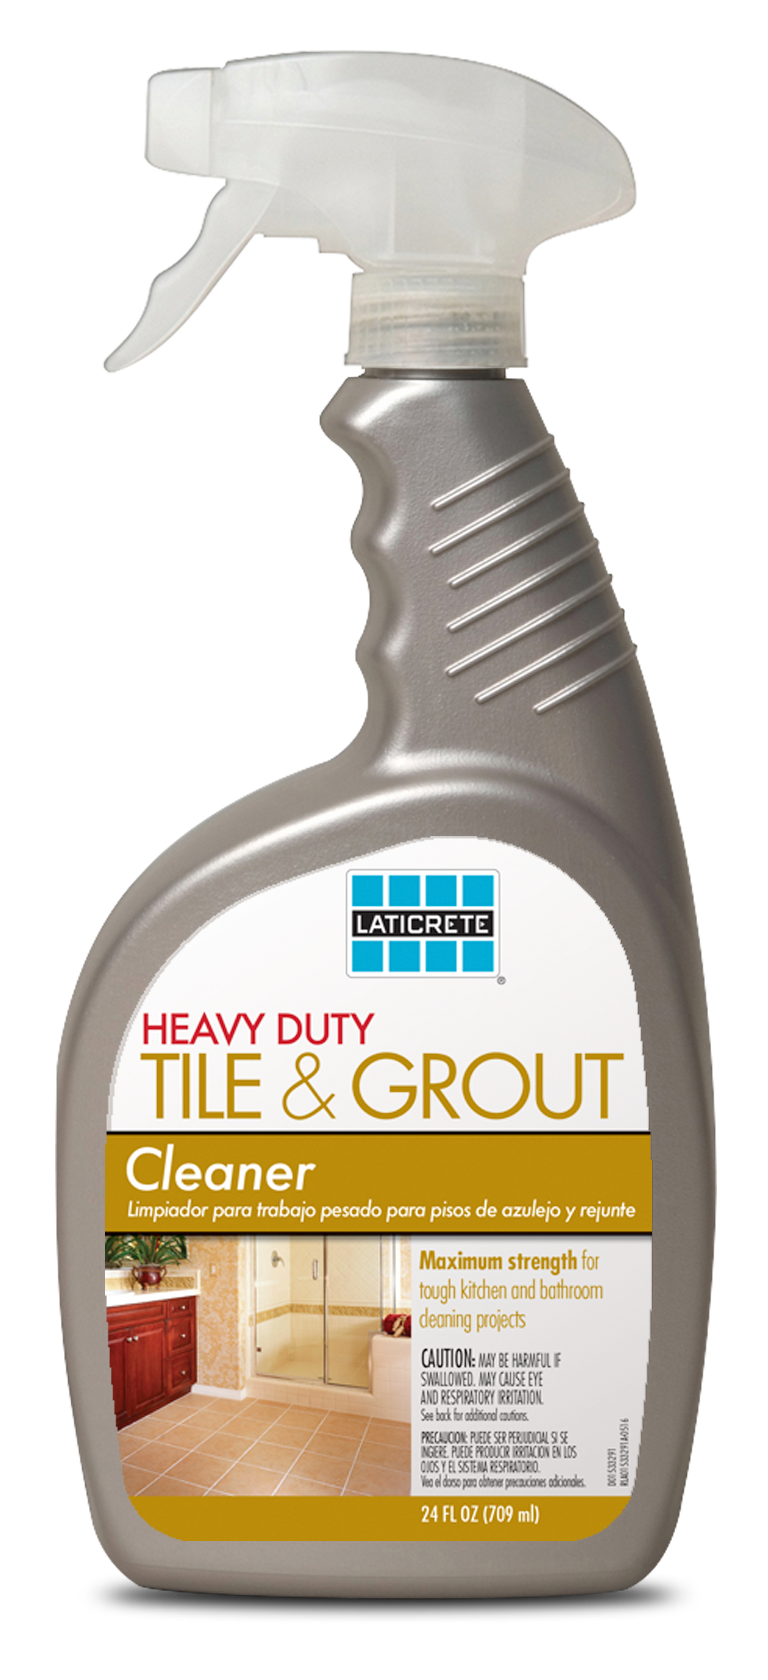 LATICRETE® Heavy Duty Tile & Grout Cleaner